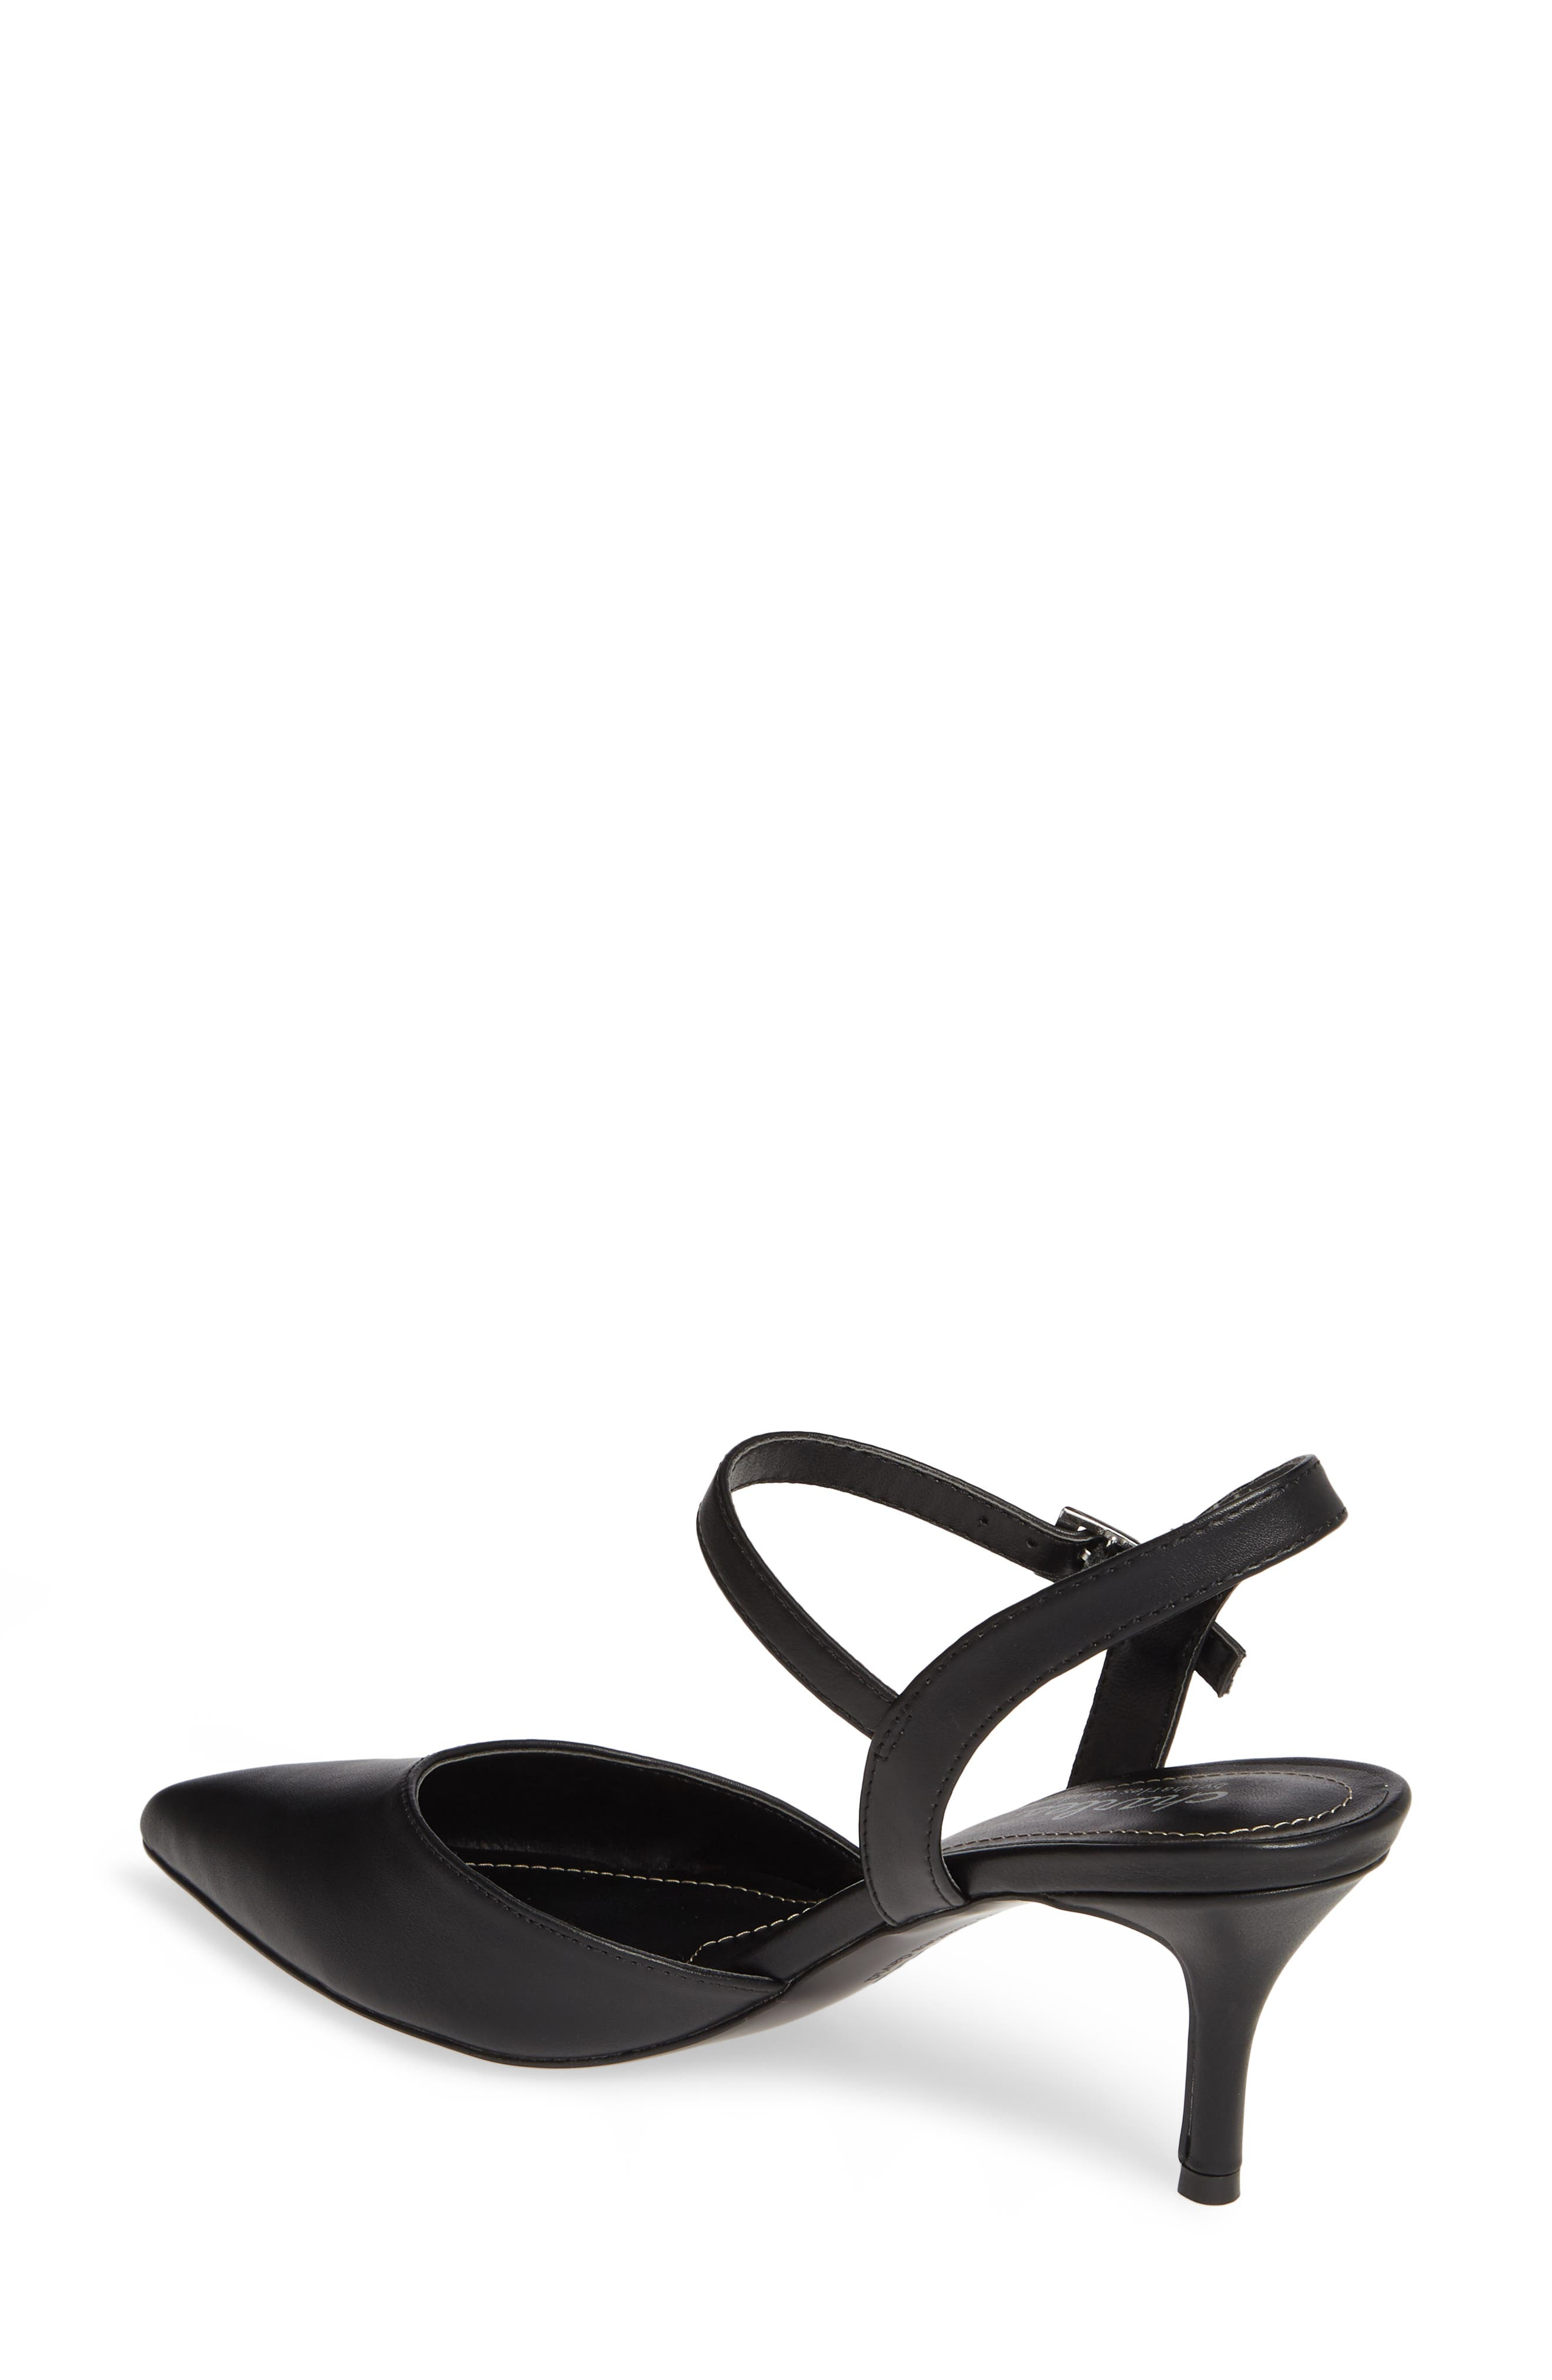 CHARLES BY CHARLES DAVID, Ankle Strap Pump, Alternate thumbnail 2, color, BLACK FAUX LEATHER